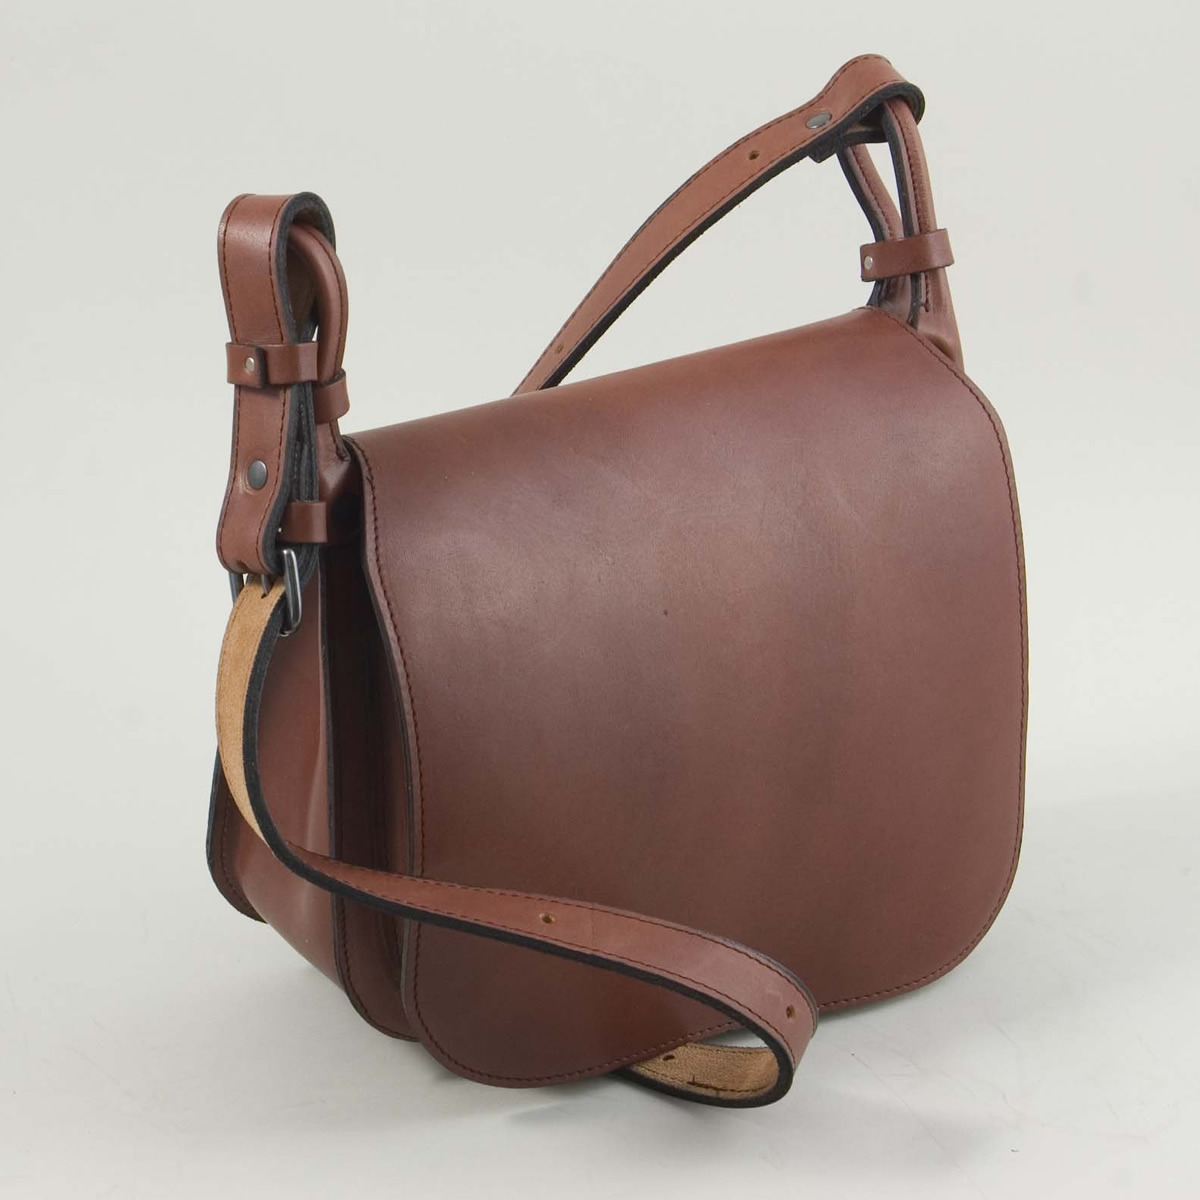 Handbags & Shoulder Bags - The Hunting Bag